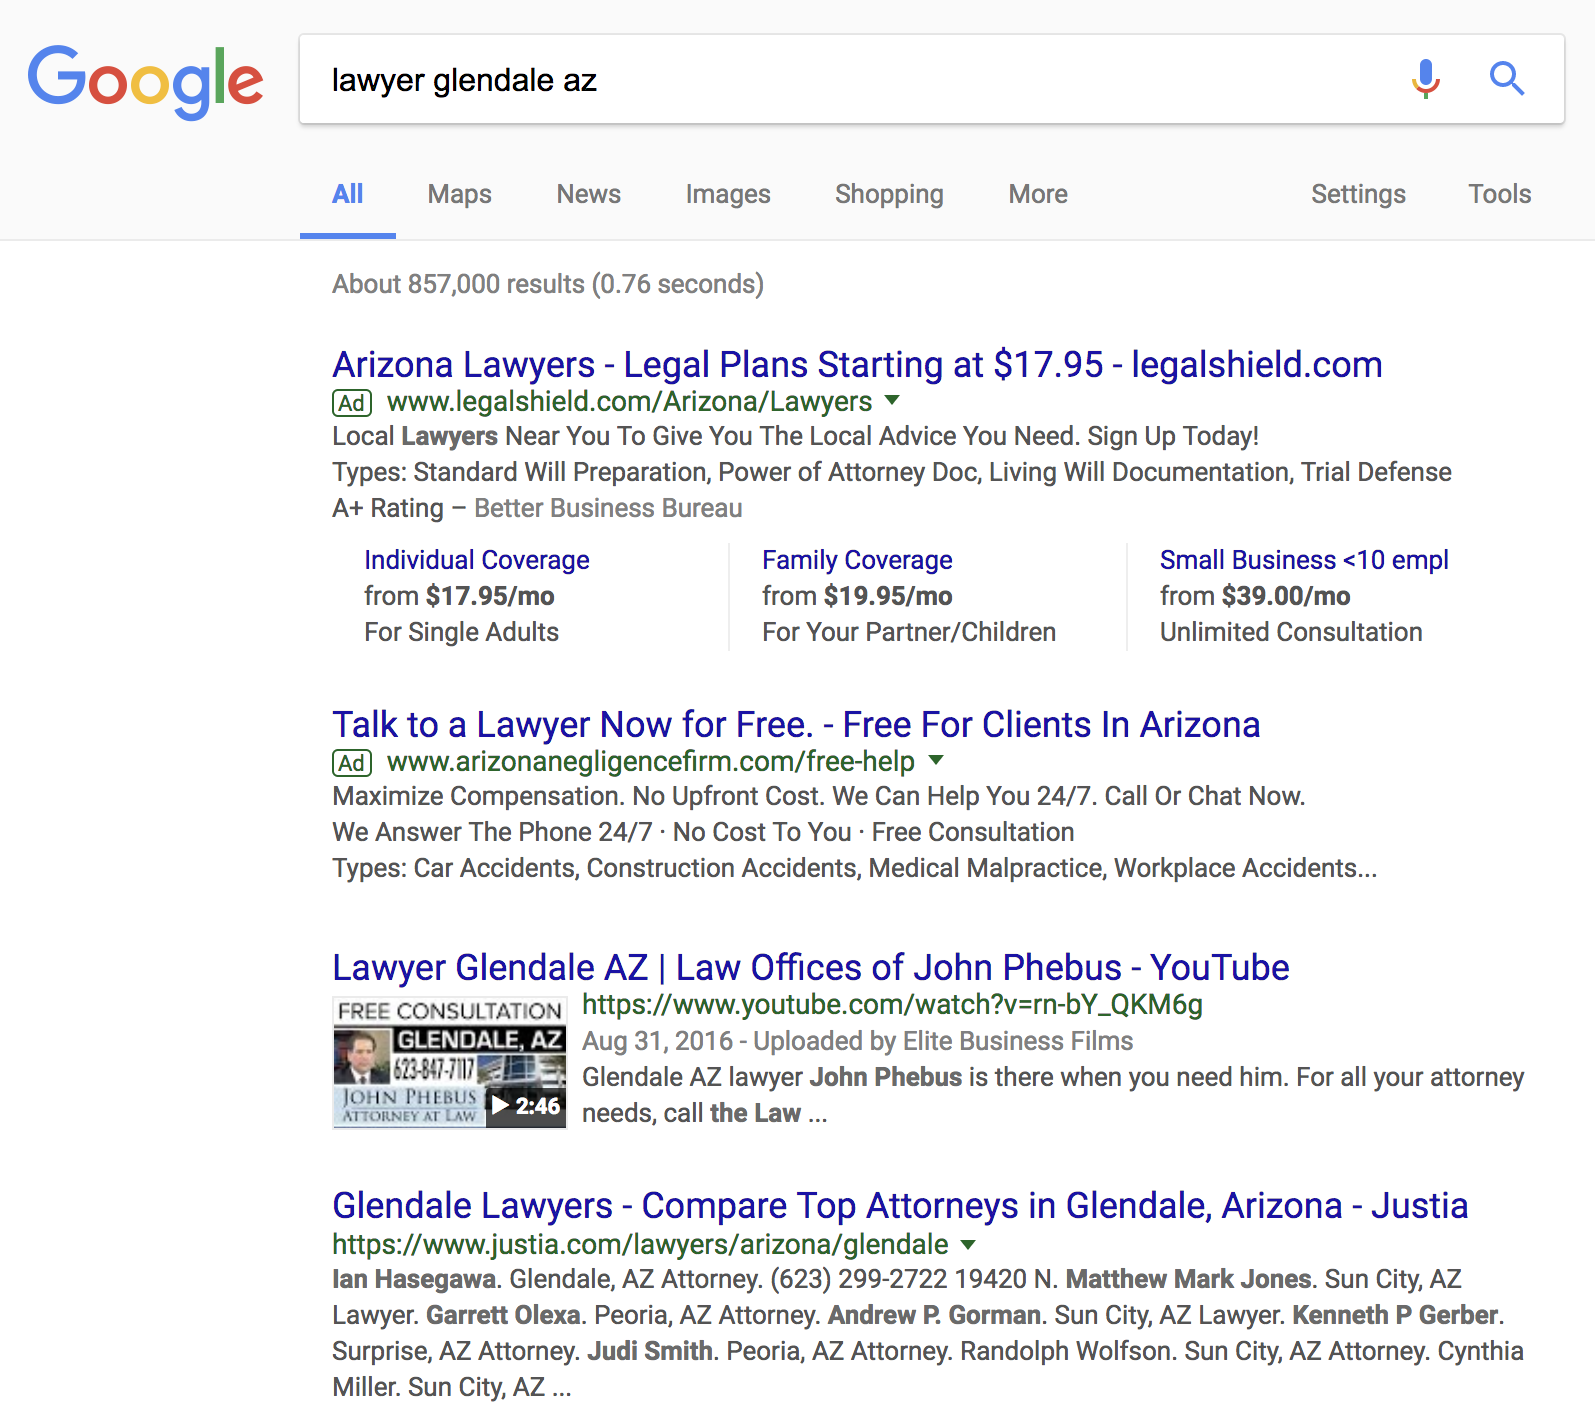 The Law Offices of John Phebus - Page 1 in Google Search - top organic resultKeyword: lawyer glendale azhttps://www.crimeandinjurylaw.com/